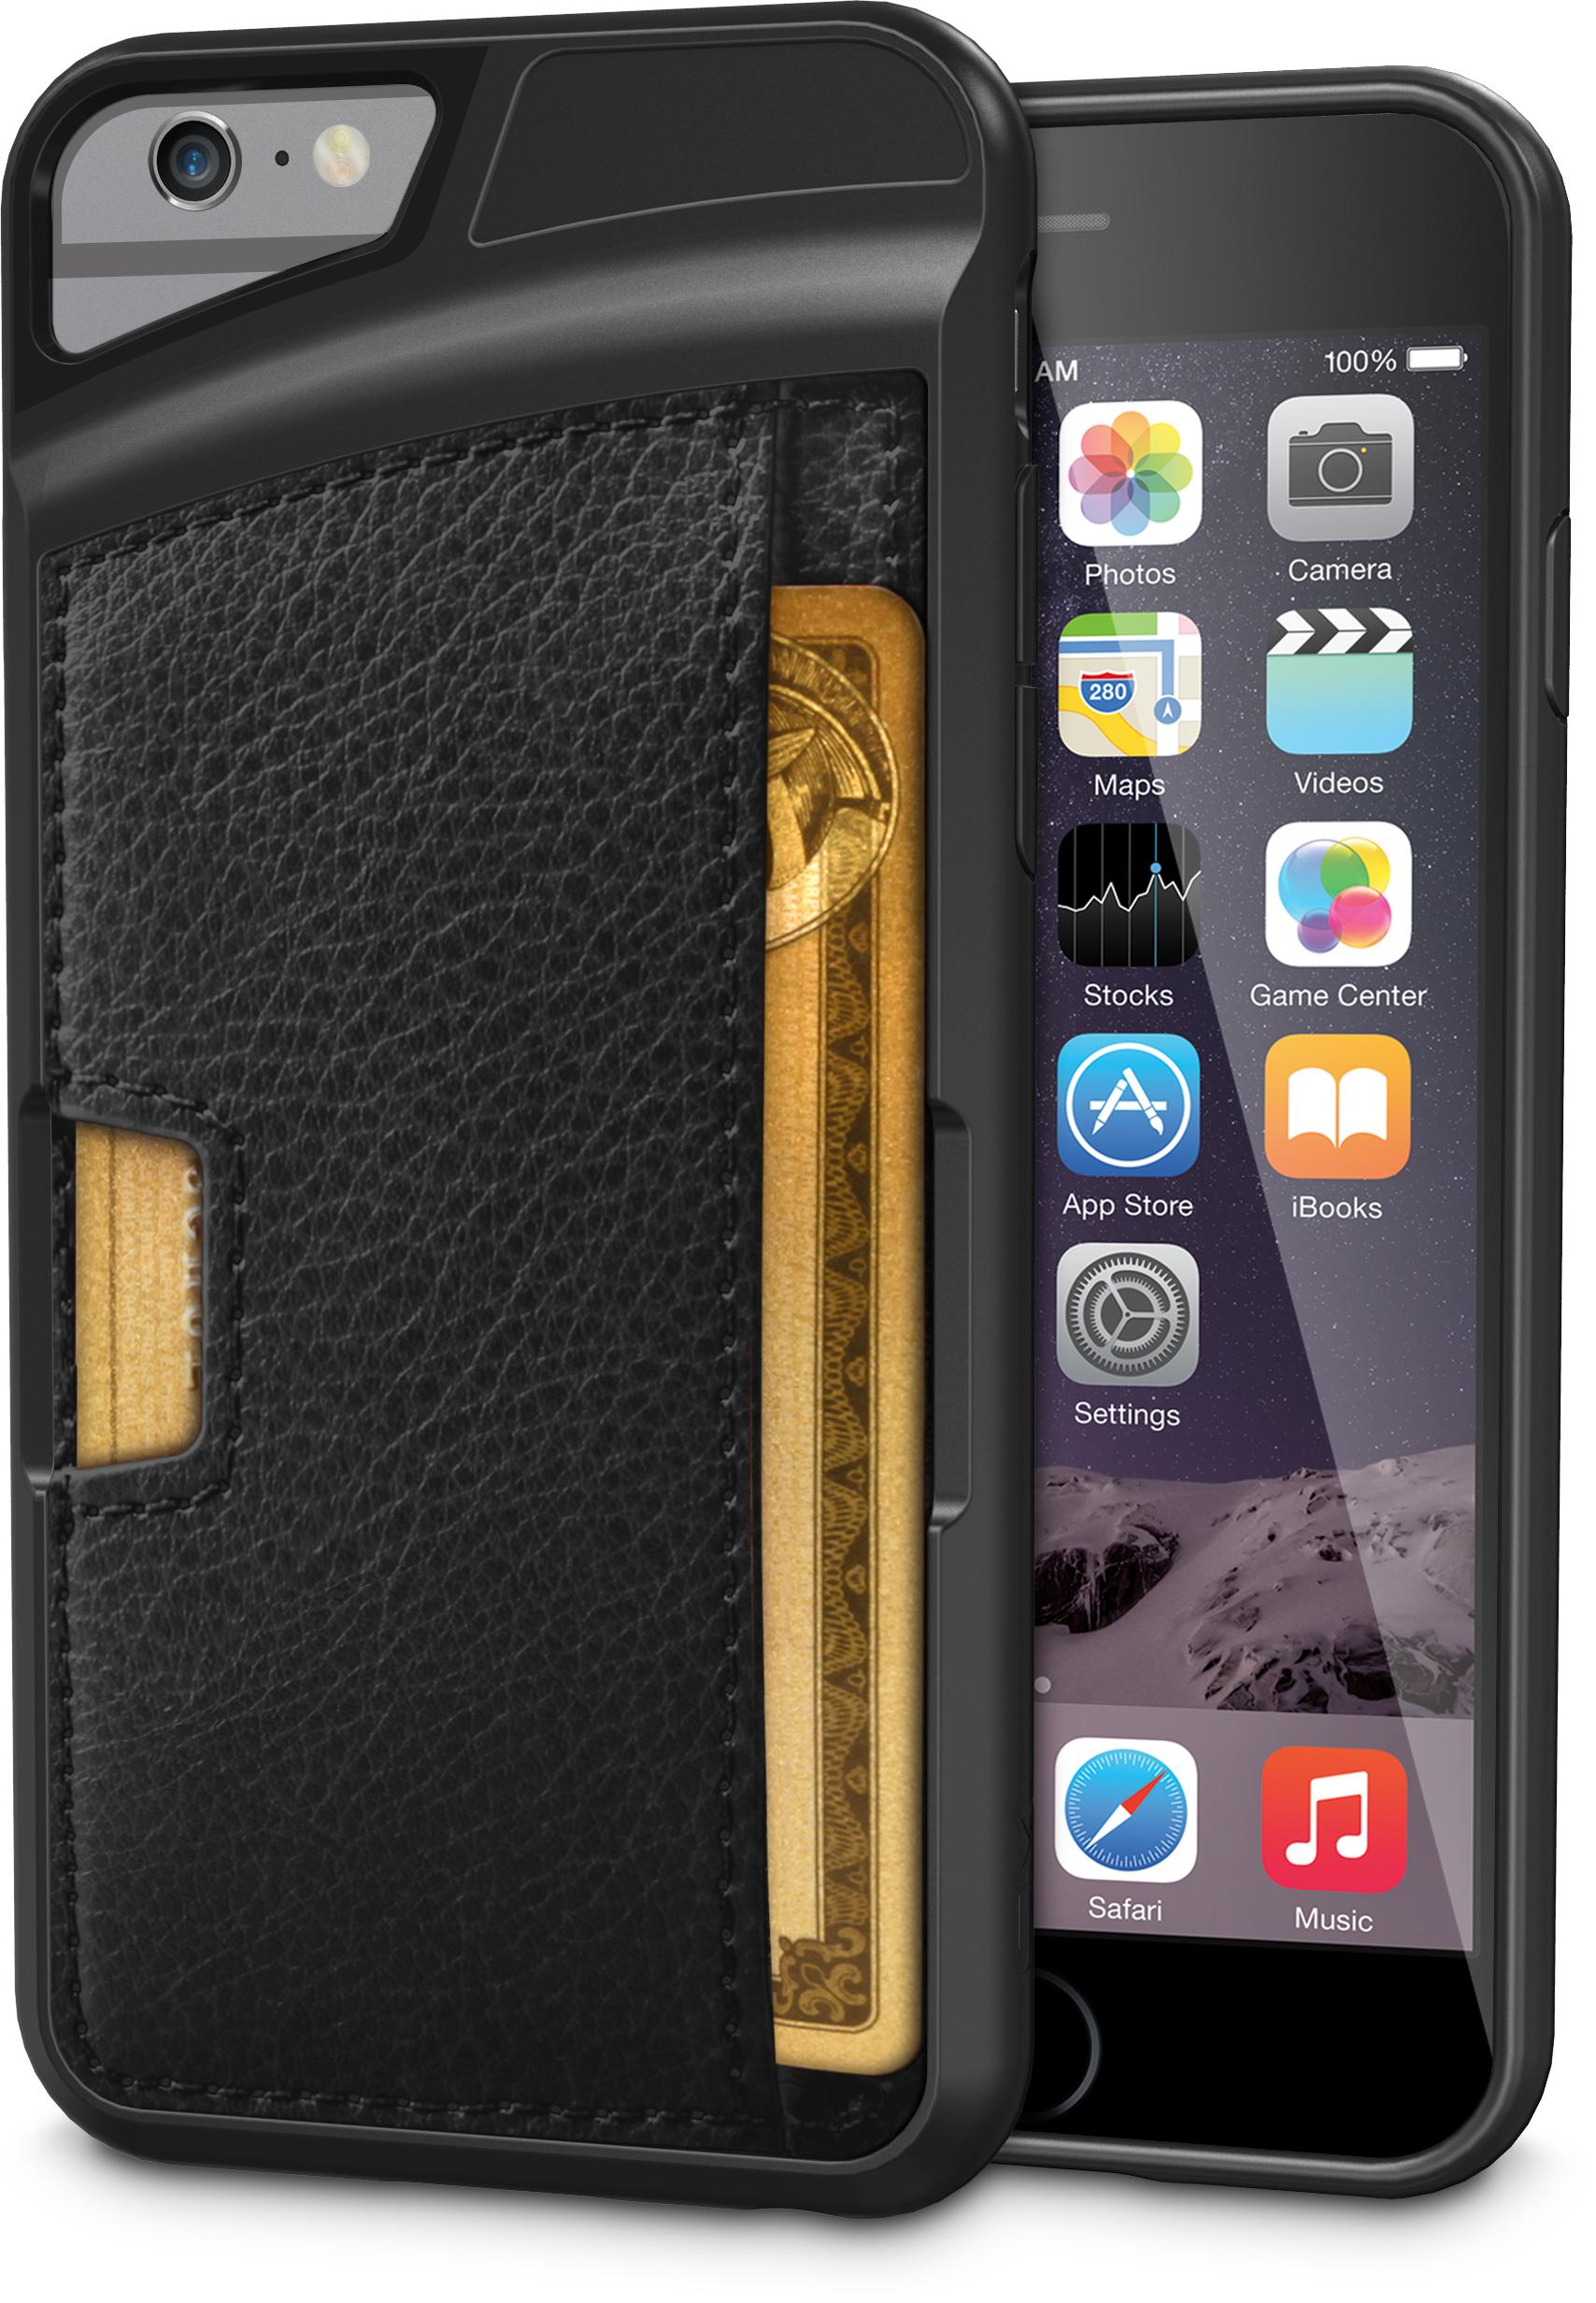 Silk iPhone 6/6s Wallet Case – VAULT FITS 3 CARDS PLUS CASH – For the 3 people who still carry cash.